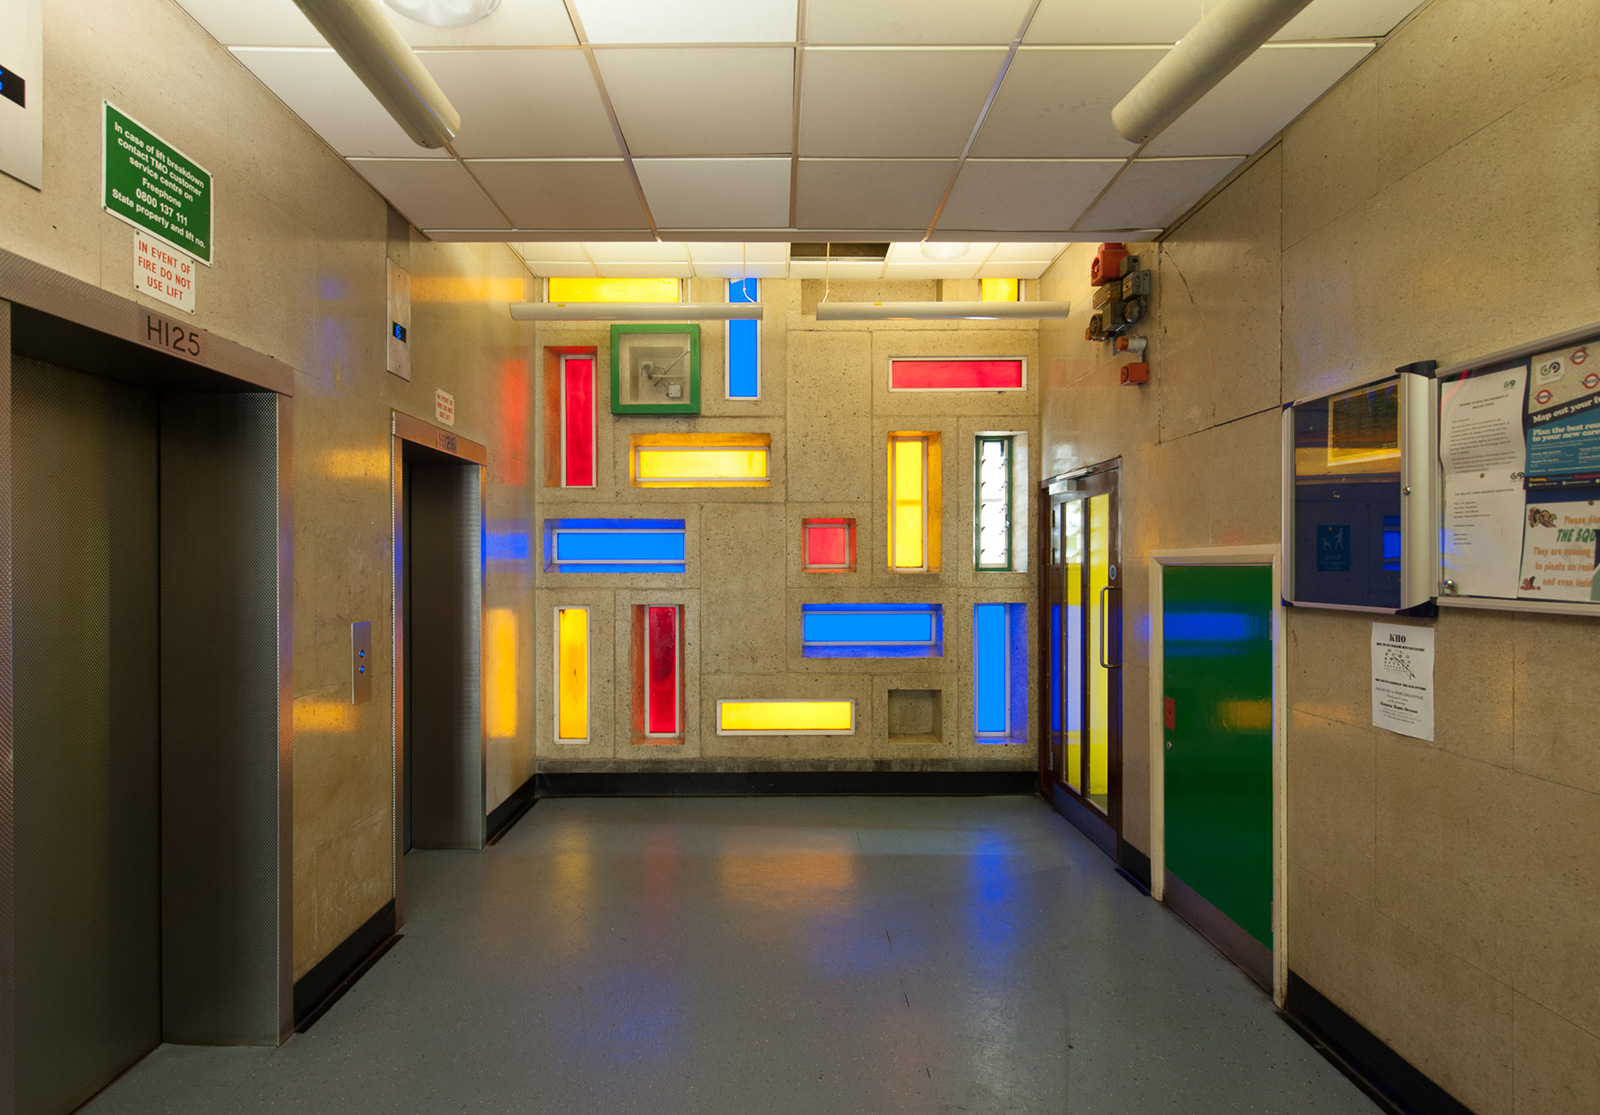 The colourful entrance at Trellick Tower